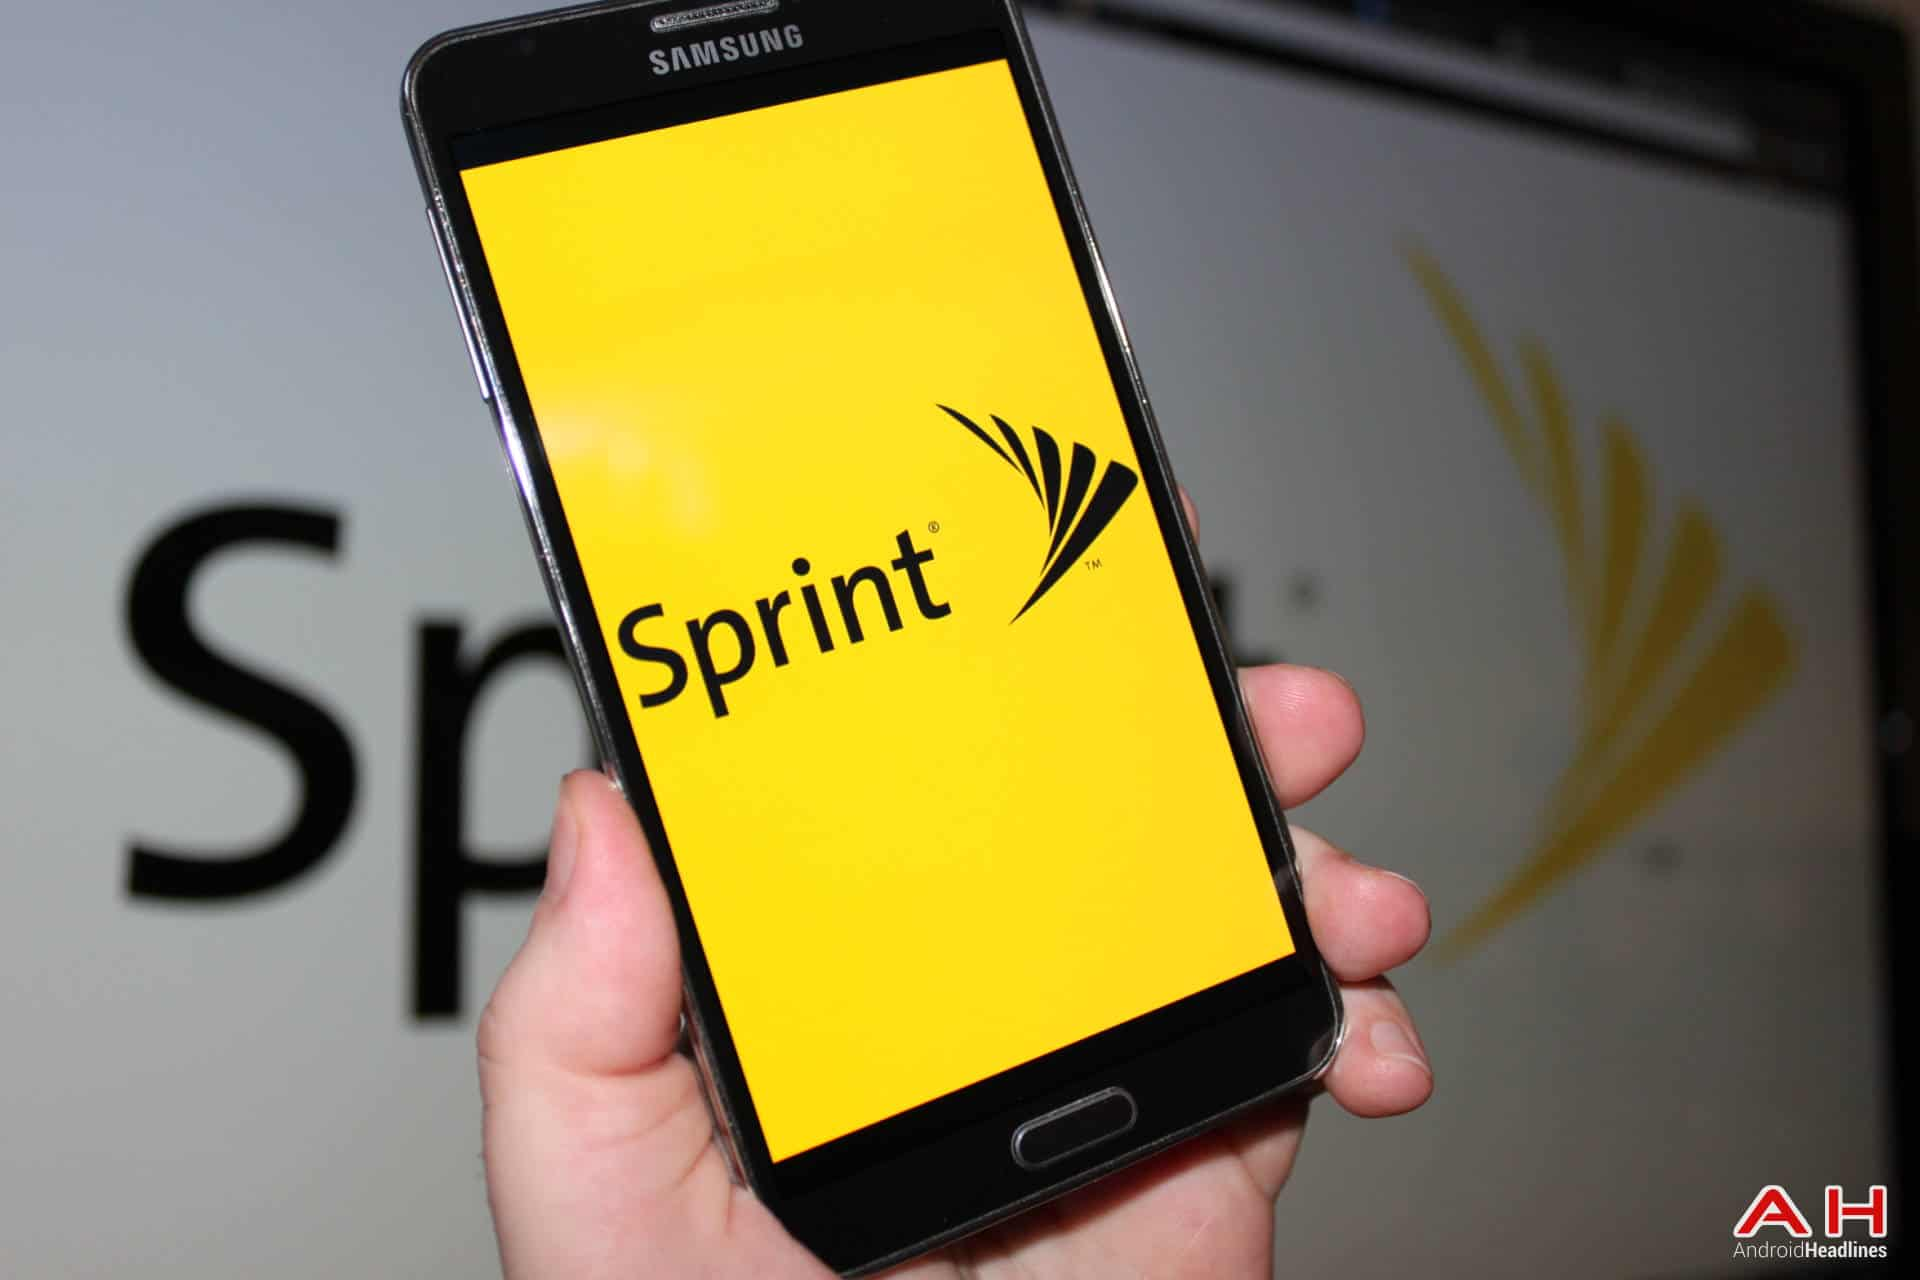 Sprint Announces new $60 Plan for Unlimited Talk, Text and Data